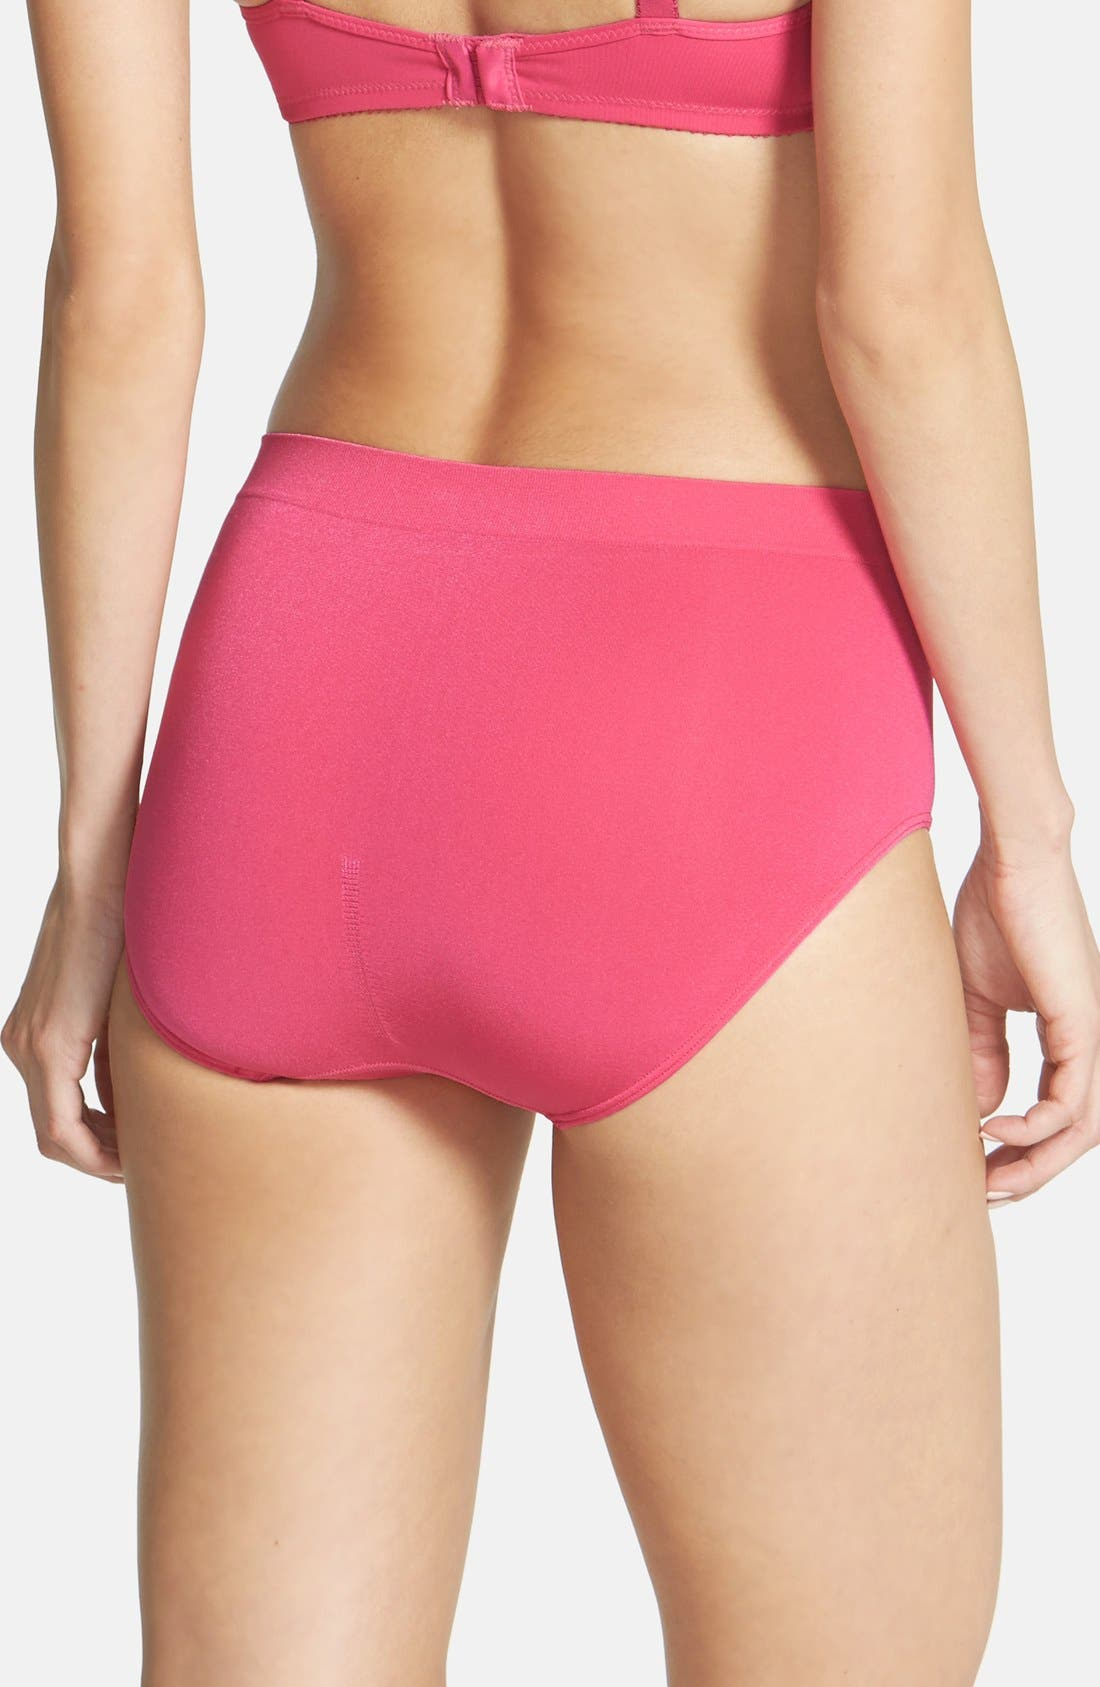 B Smooth Briefs,                             Alternate thumbnail 263, color,